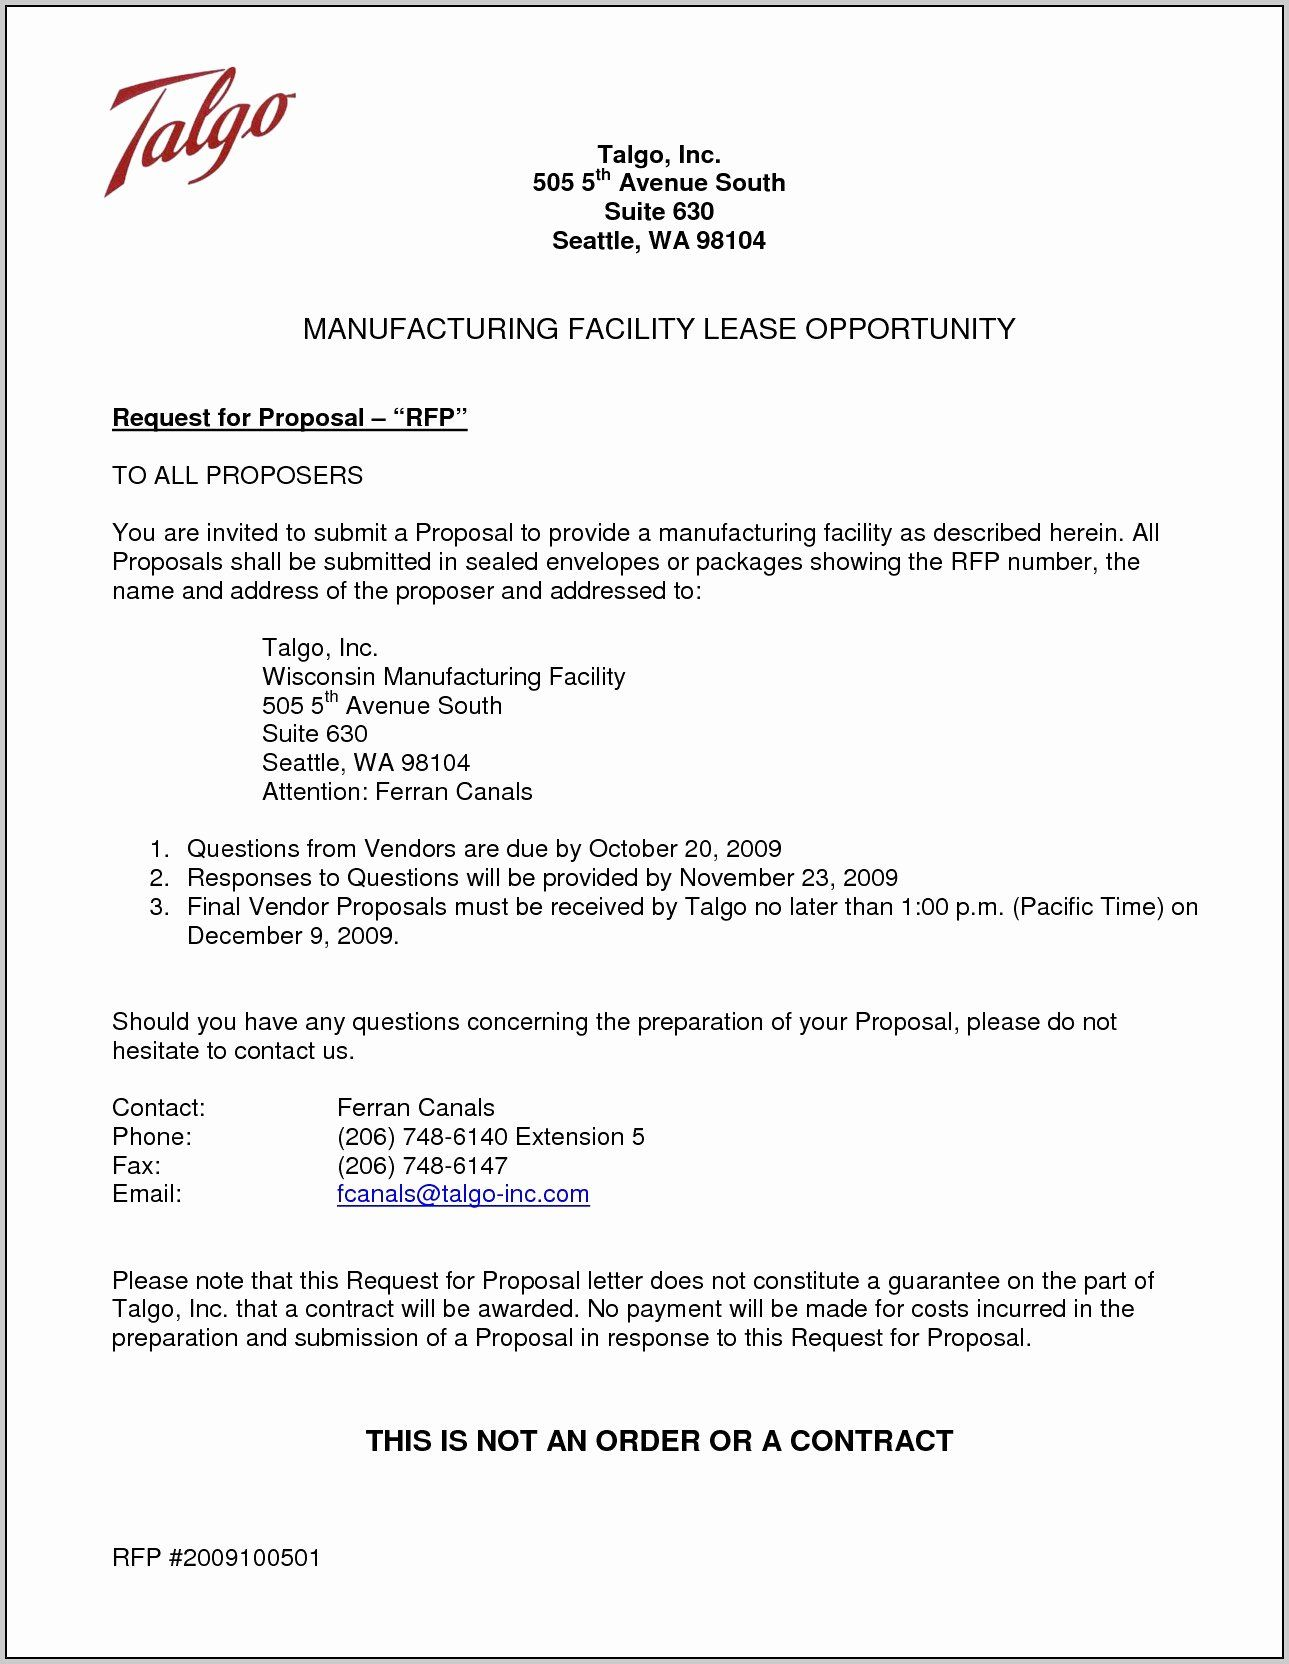 Grant Proposal Cover Page Fresh 10 Grant Proposal Letter Sample Request For Proposal Grant Proposal Proposal Cover